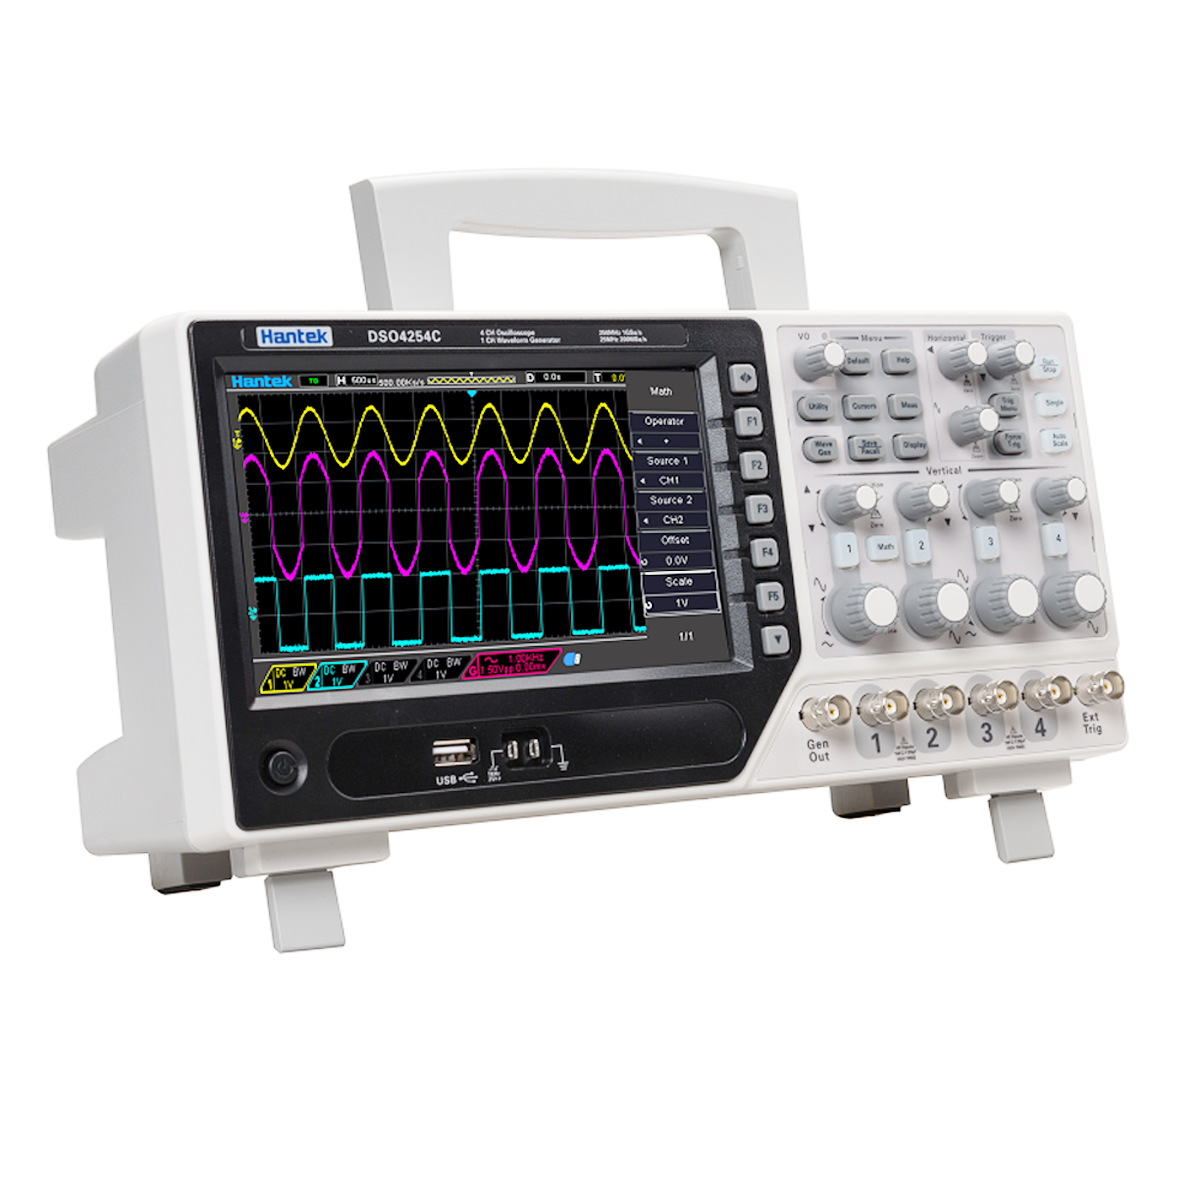 Buy O105 Hantek Dso4084c Bench Type Oscilloscope Power Suppy Adjustable 0 8211 300v 4ch 80mhz Bandwidth 500uv Div 1gs S Sample Rate Waveform Generator From Reliable